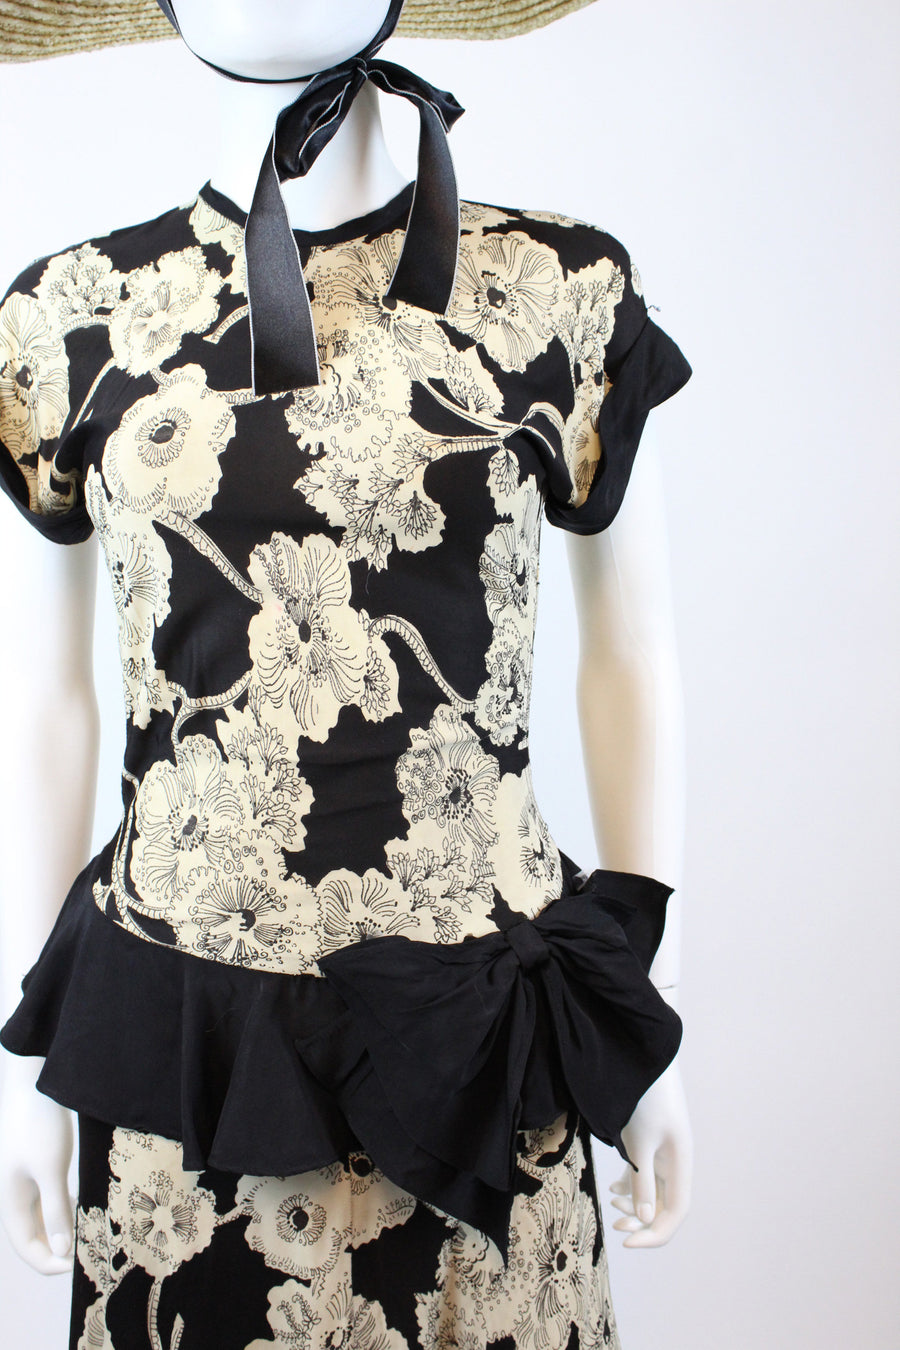 1940s rayon jersey floral dress xs | vintage sheer peplum dress | new in